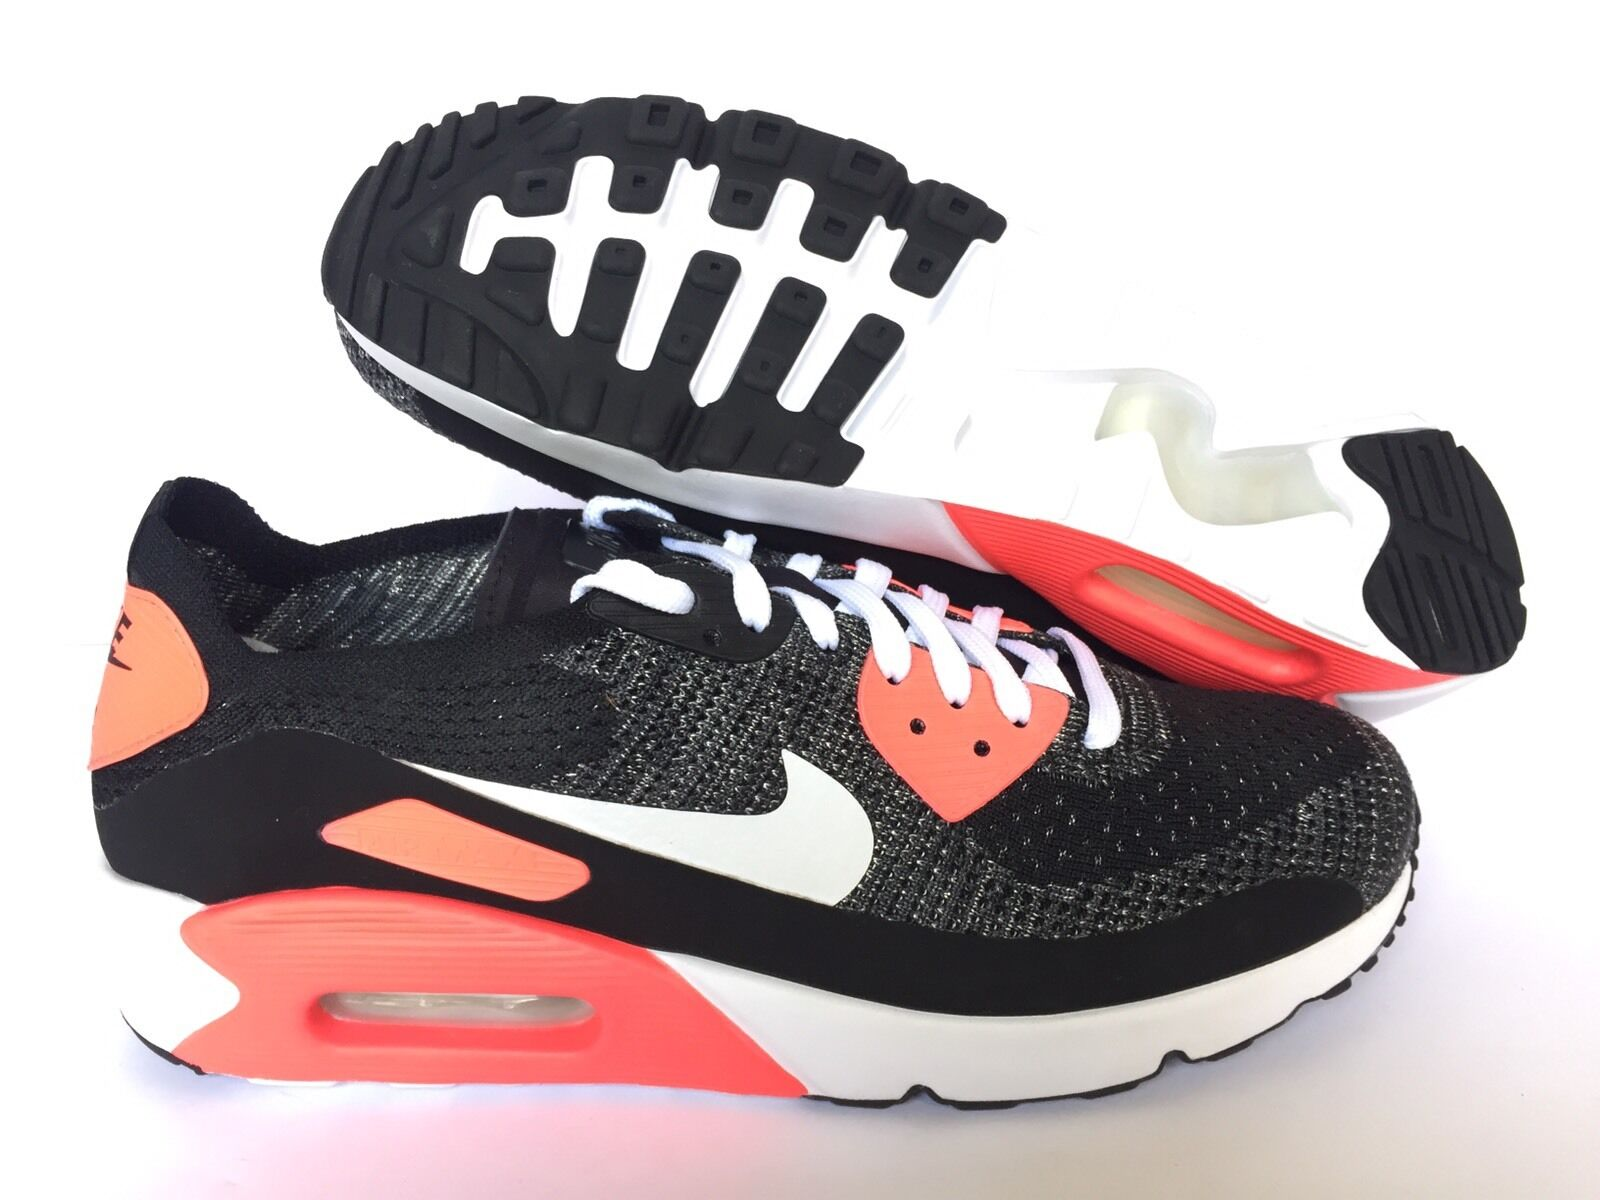 NIKE ID AIR MAX NIKEiD BLACK [ 914123-991 ] US MEN SZ 12.5